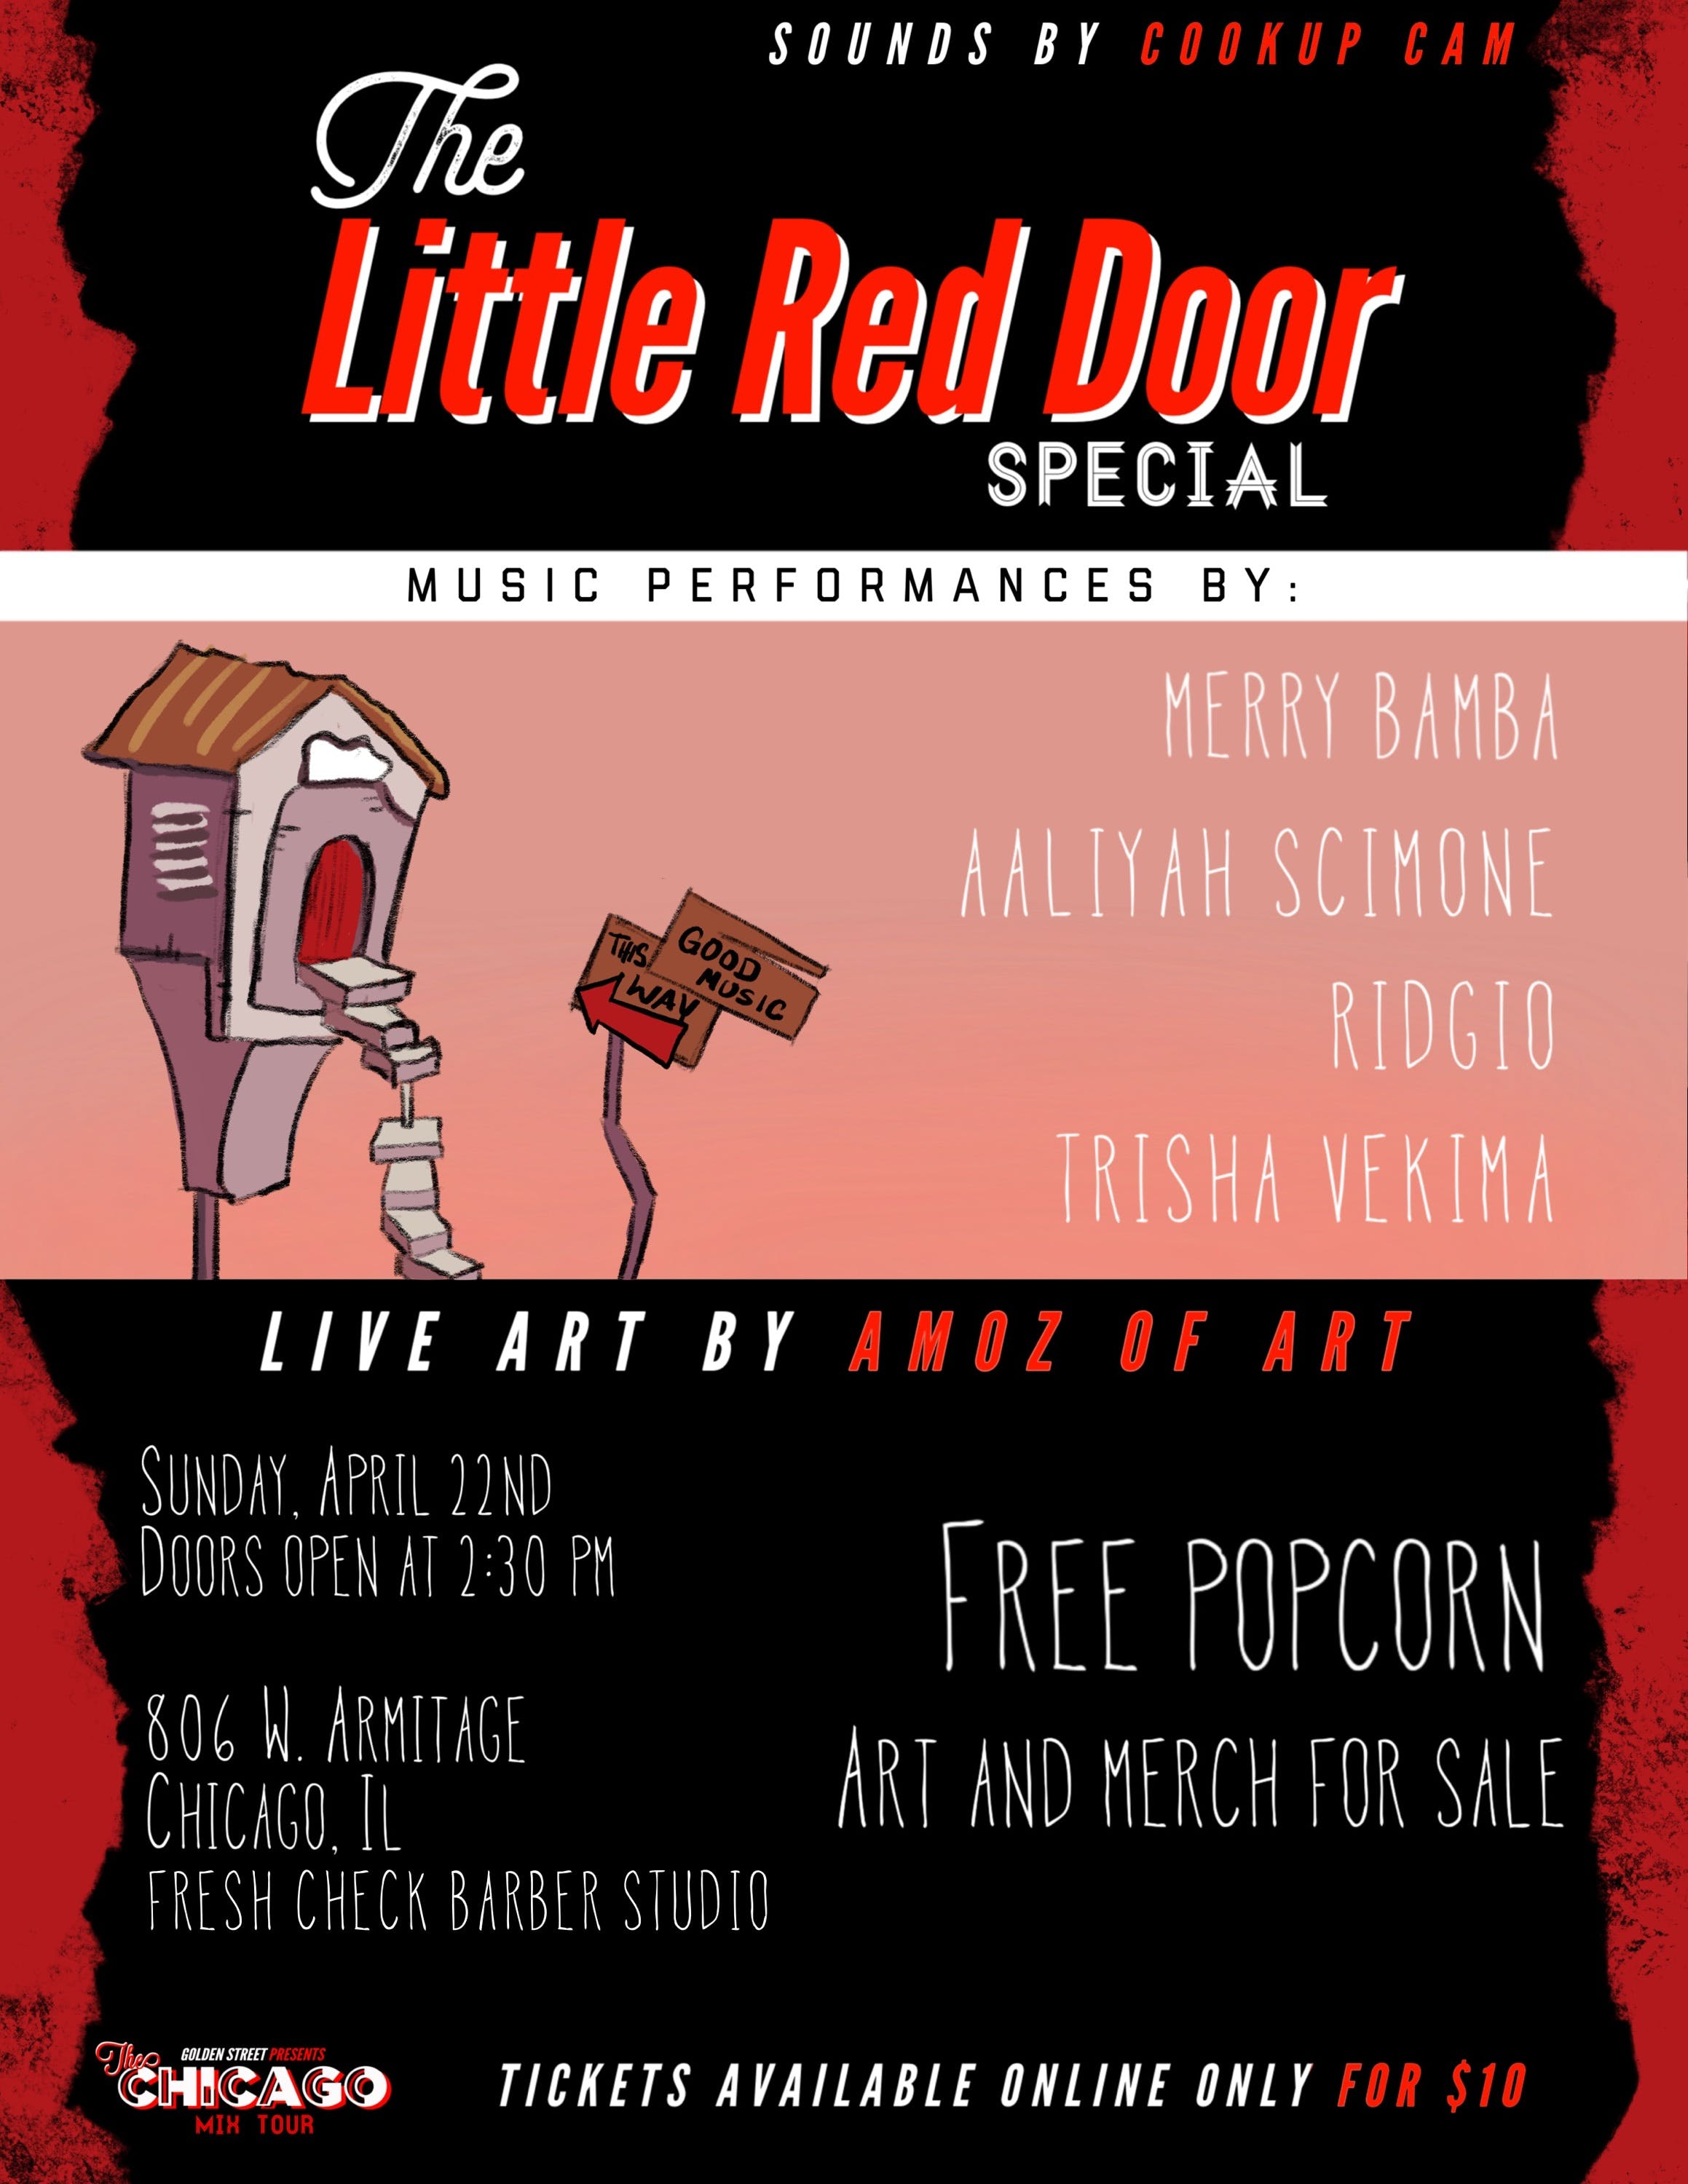 The Chicago Mix Tour Little Red Door Special 22 Apr 2018